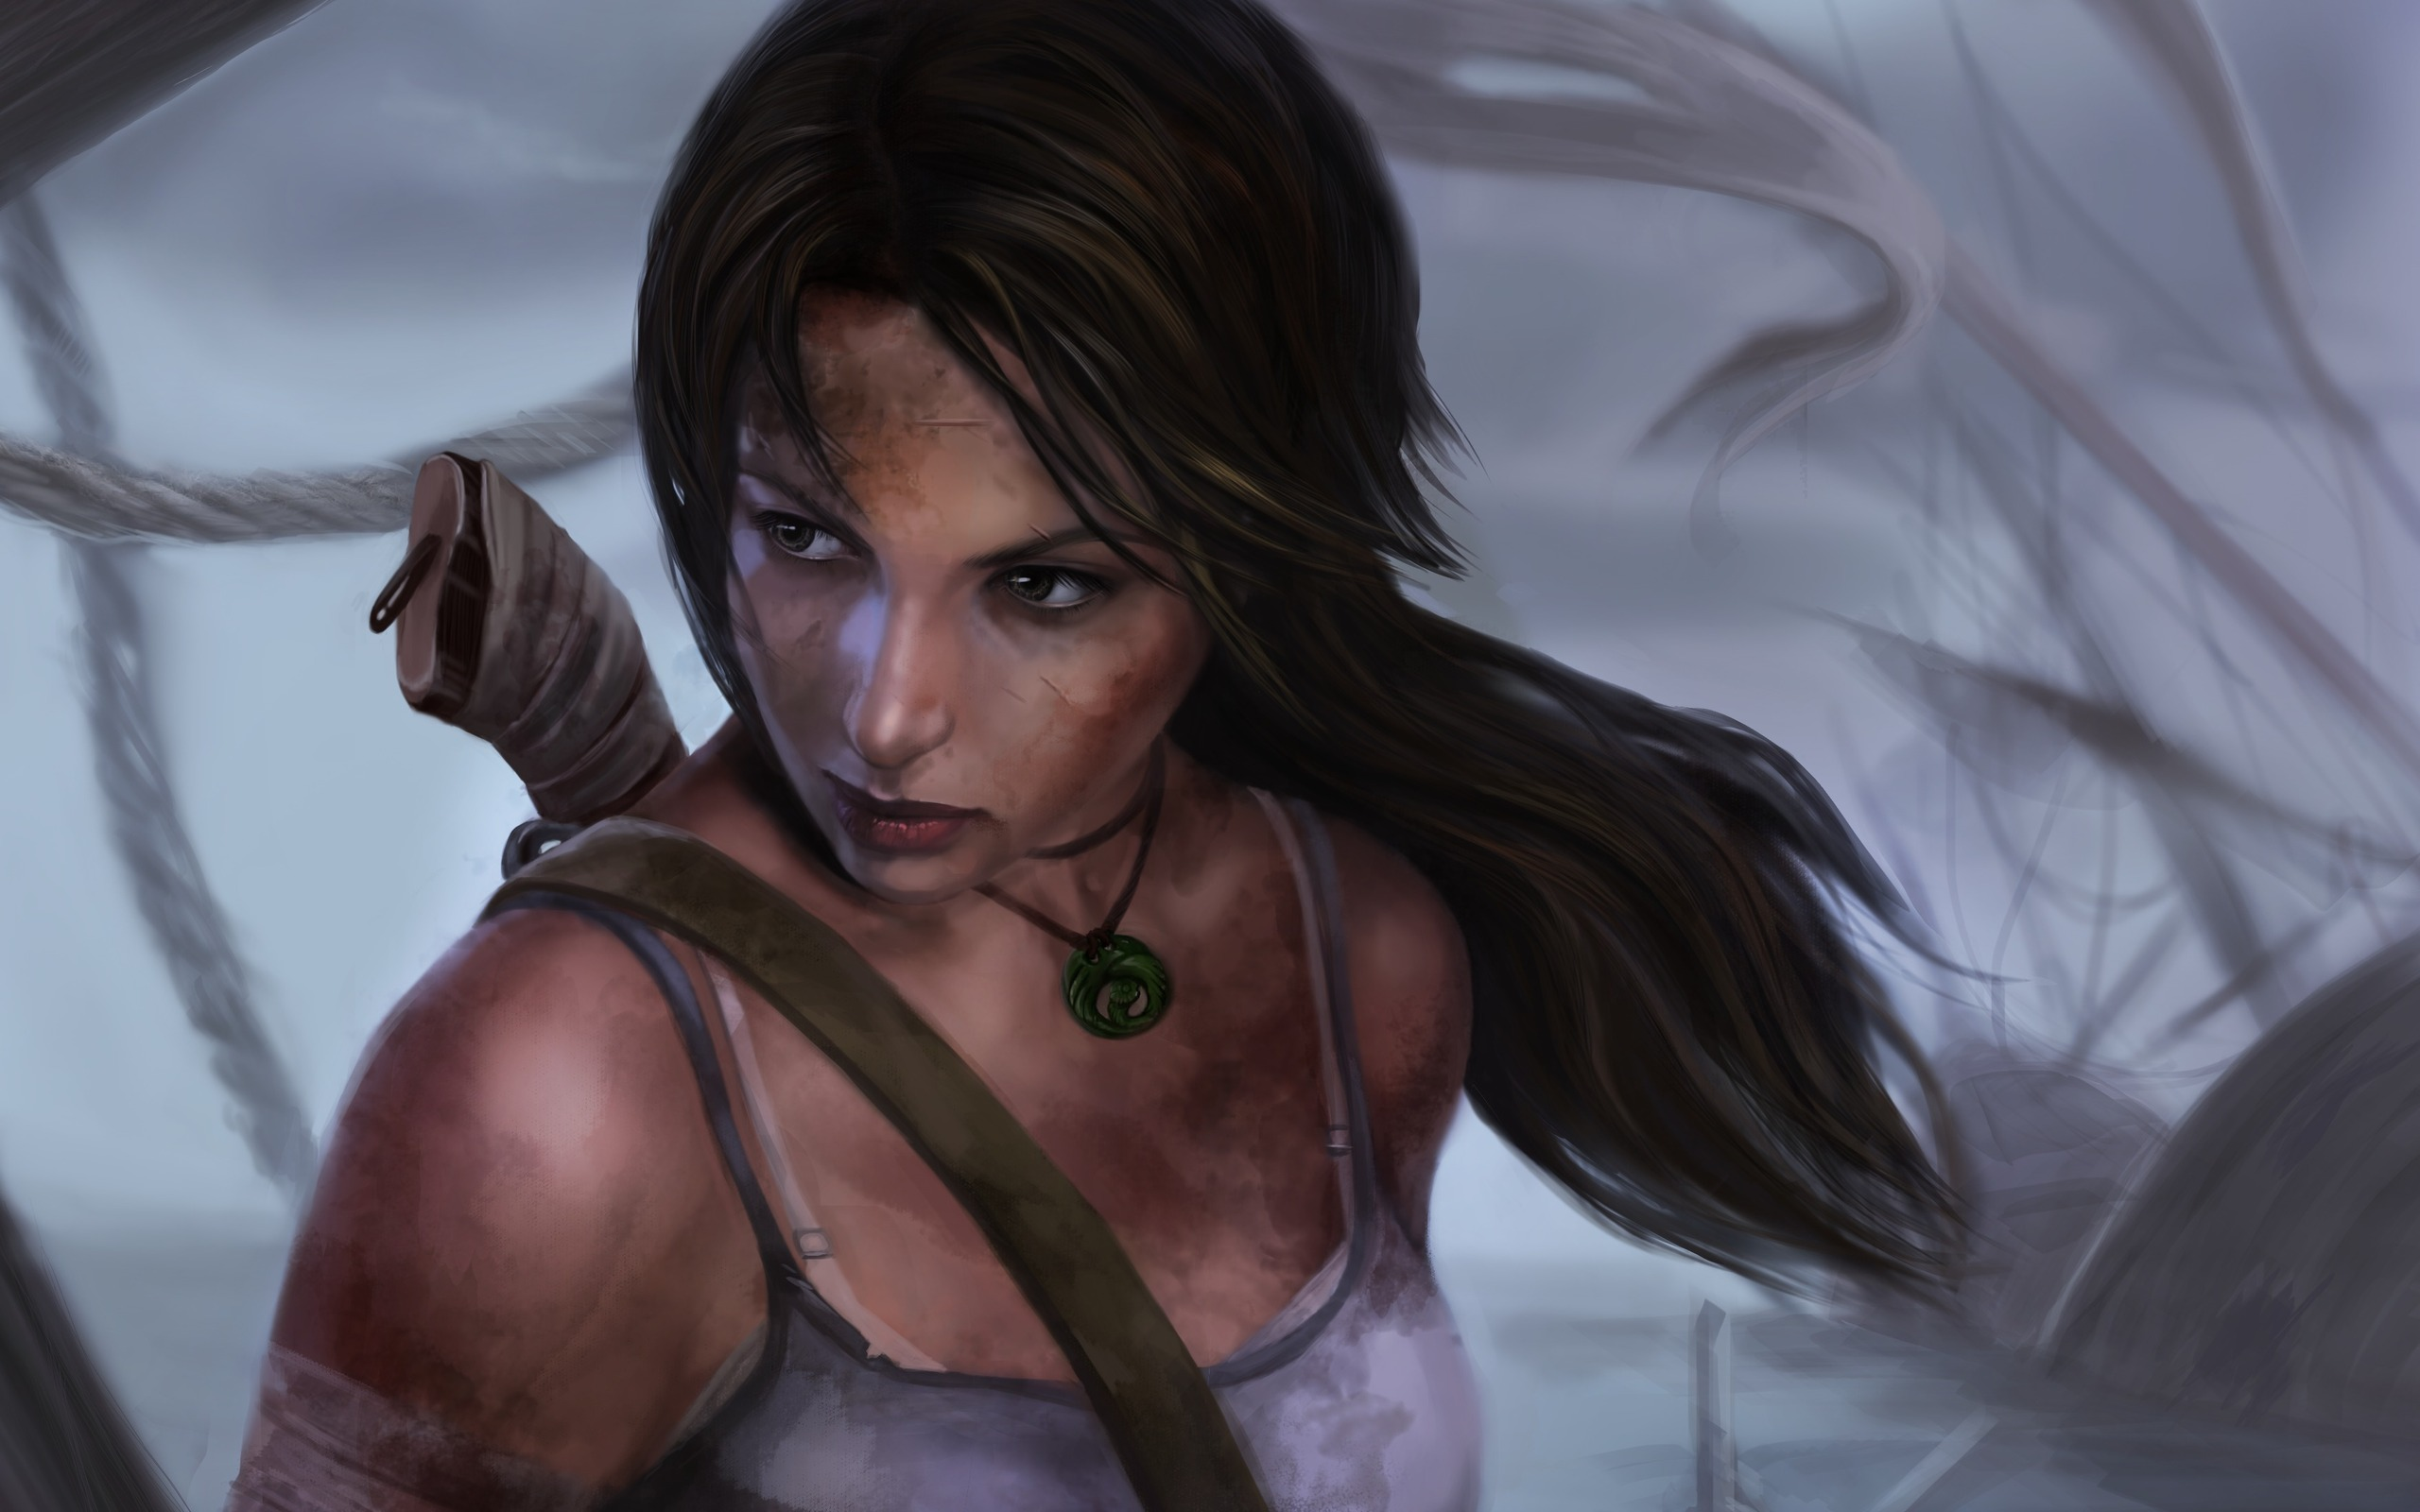 lara-croft-tomb-raider-art-girl-4t.jpg